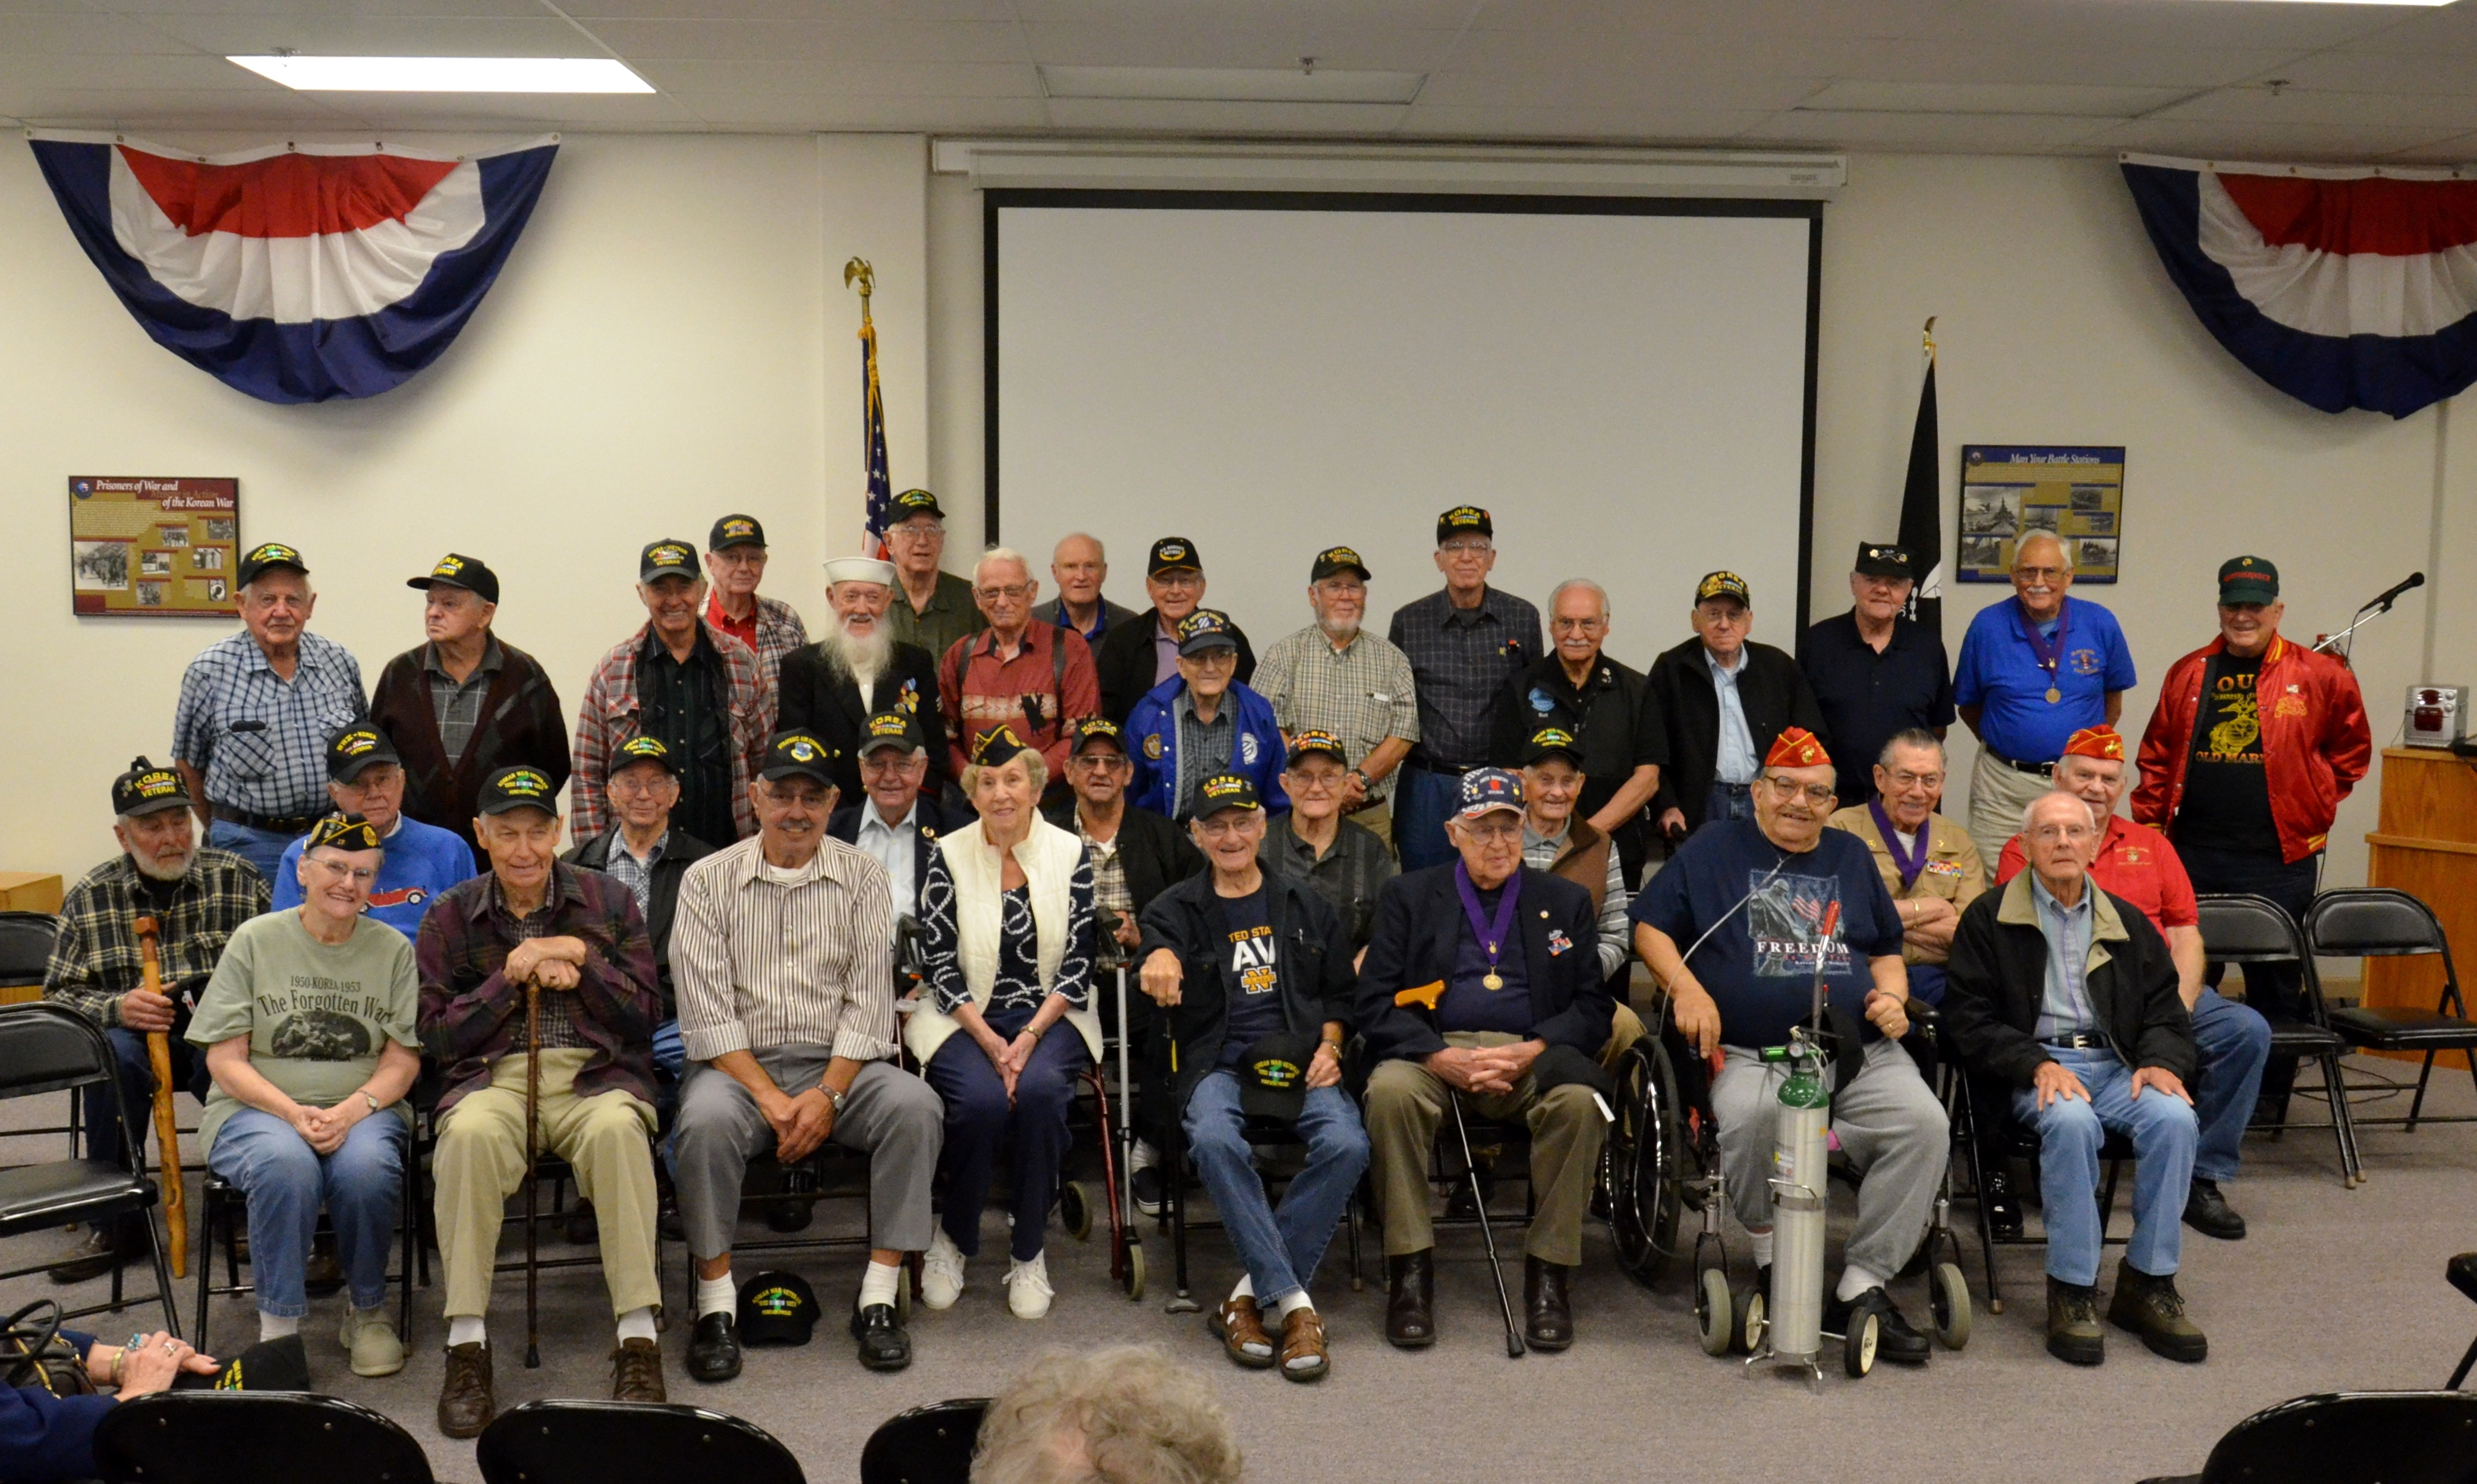 Korean War Veterans and POW/MIA Day